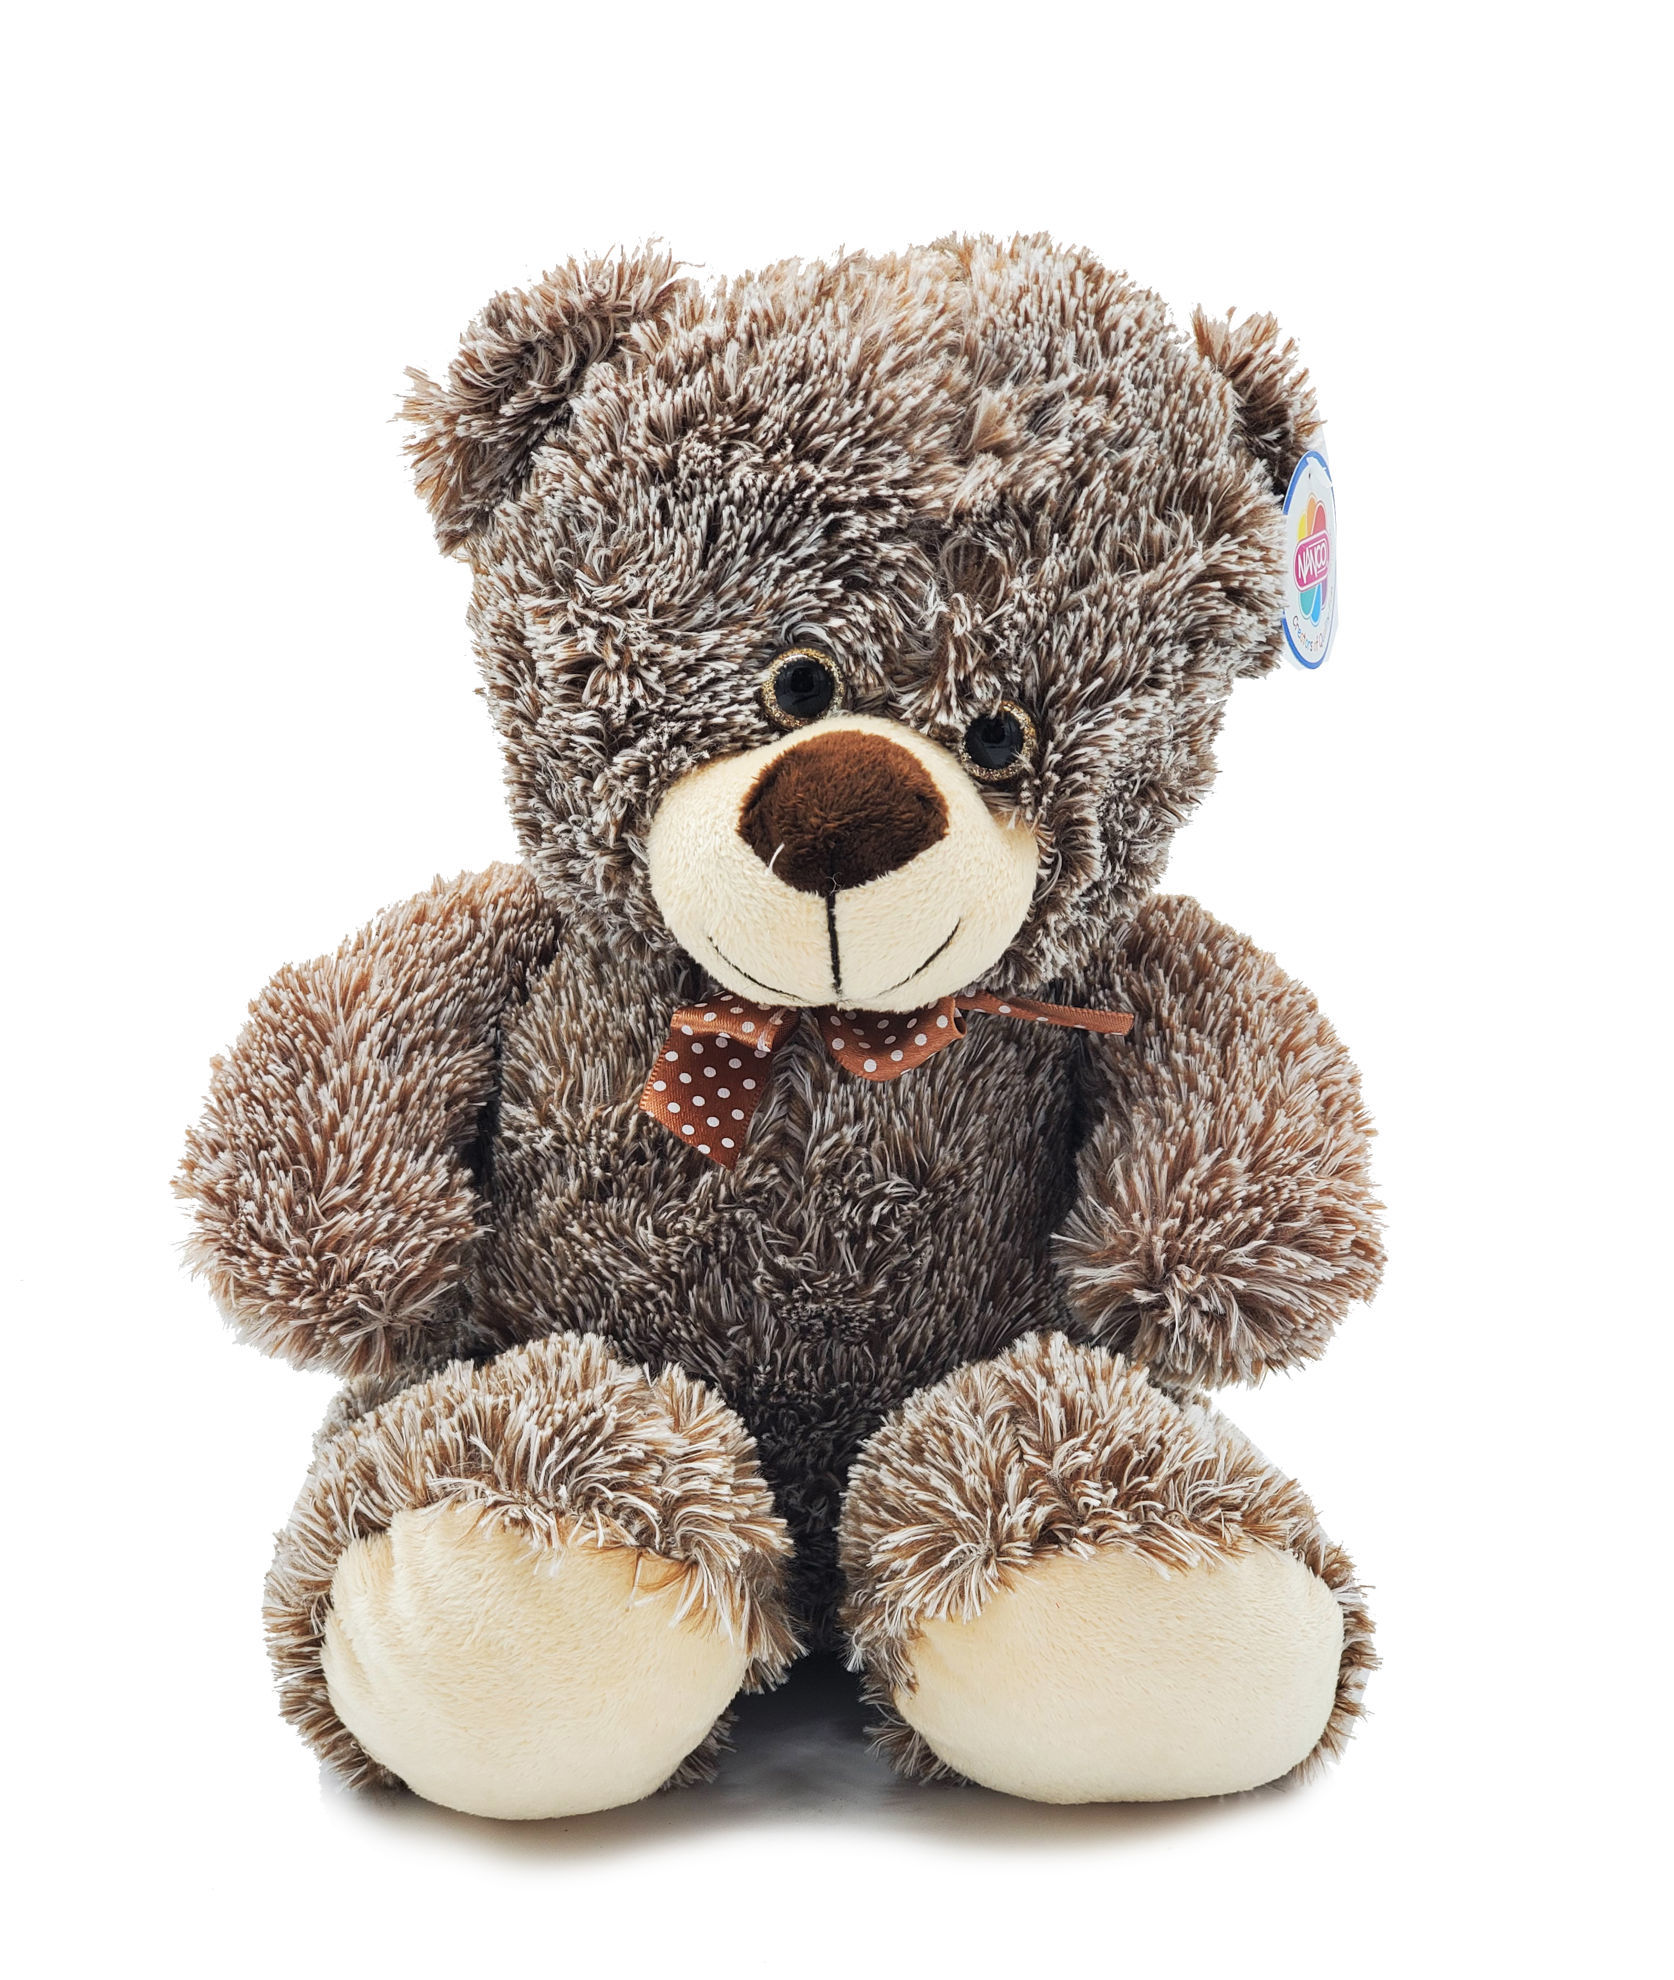 Picture of Teddy Bear - Plush Toy